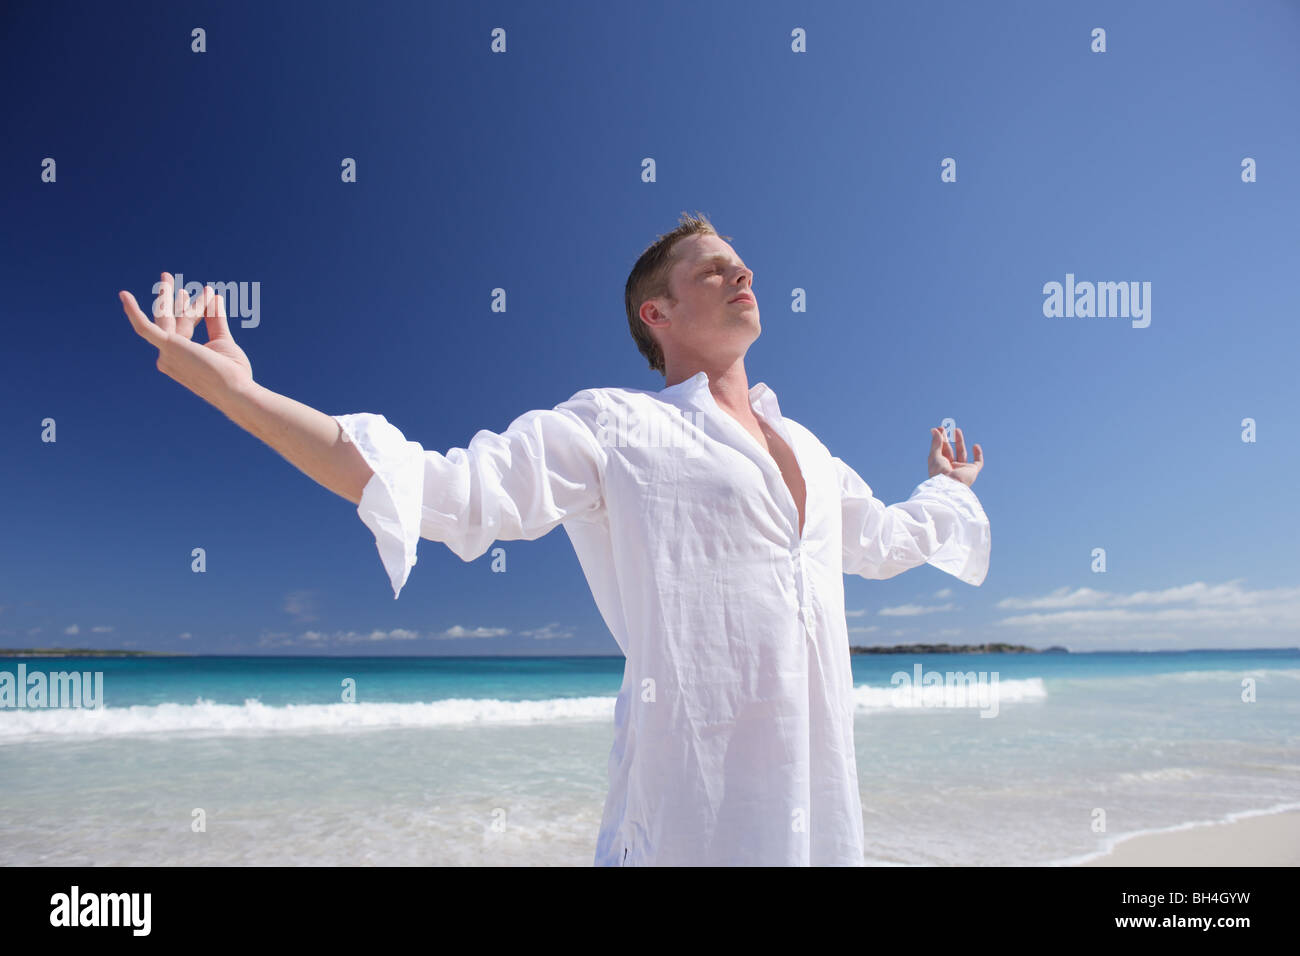 A young man practicing Tai Chi on a deserted tropical beach - Stock Image